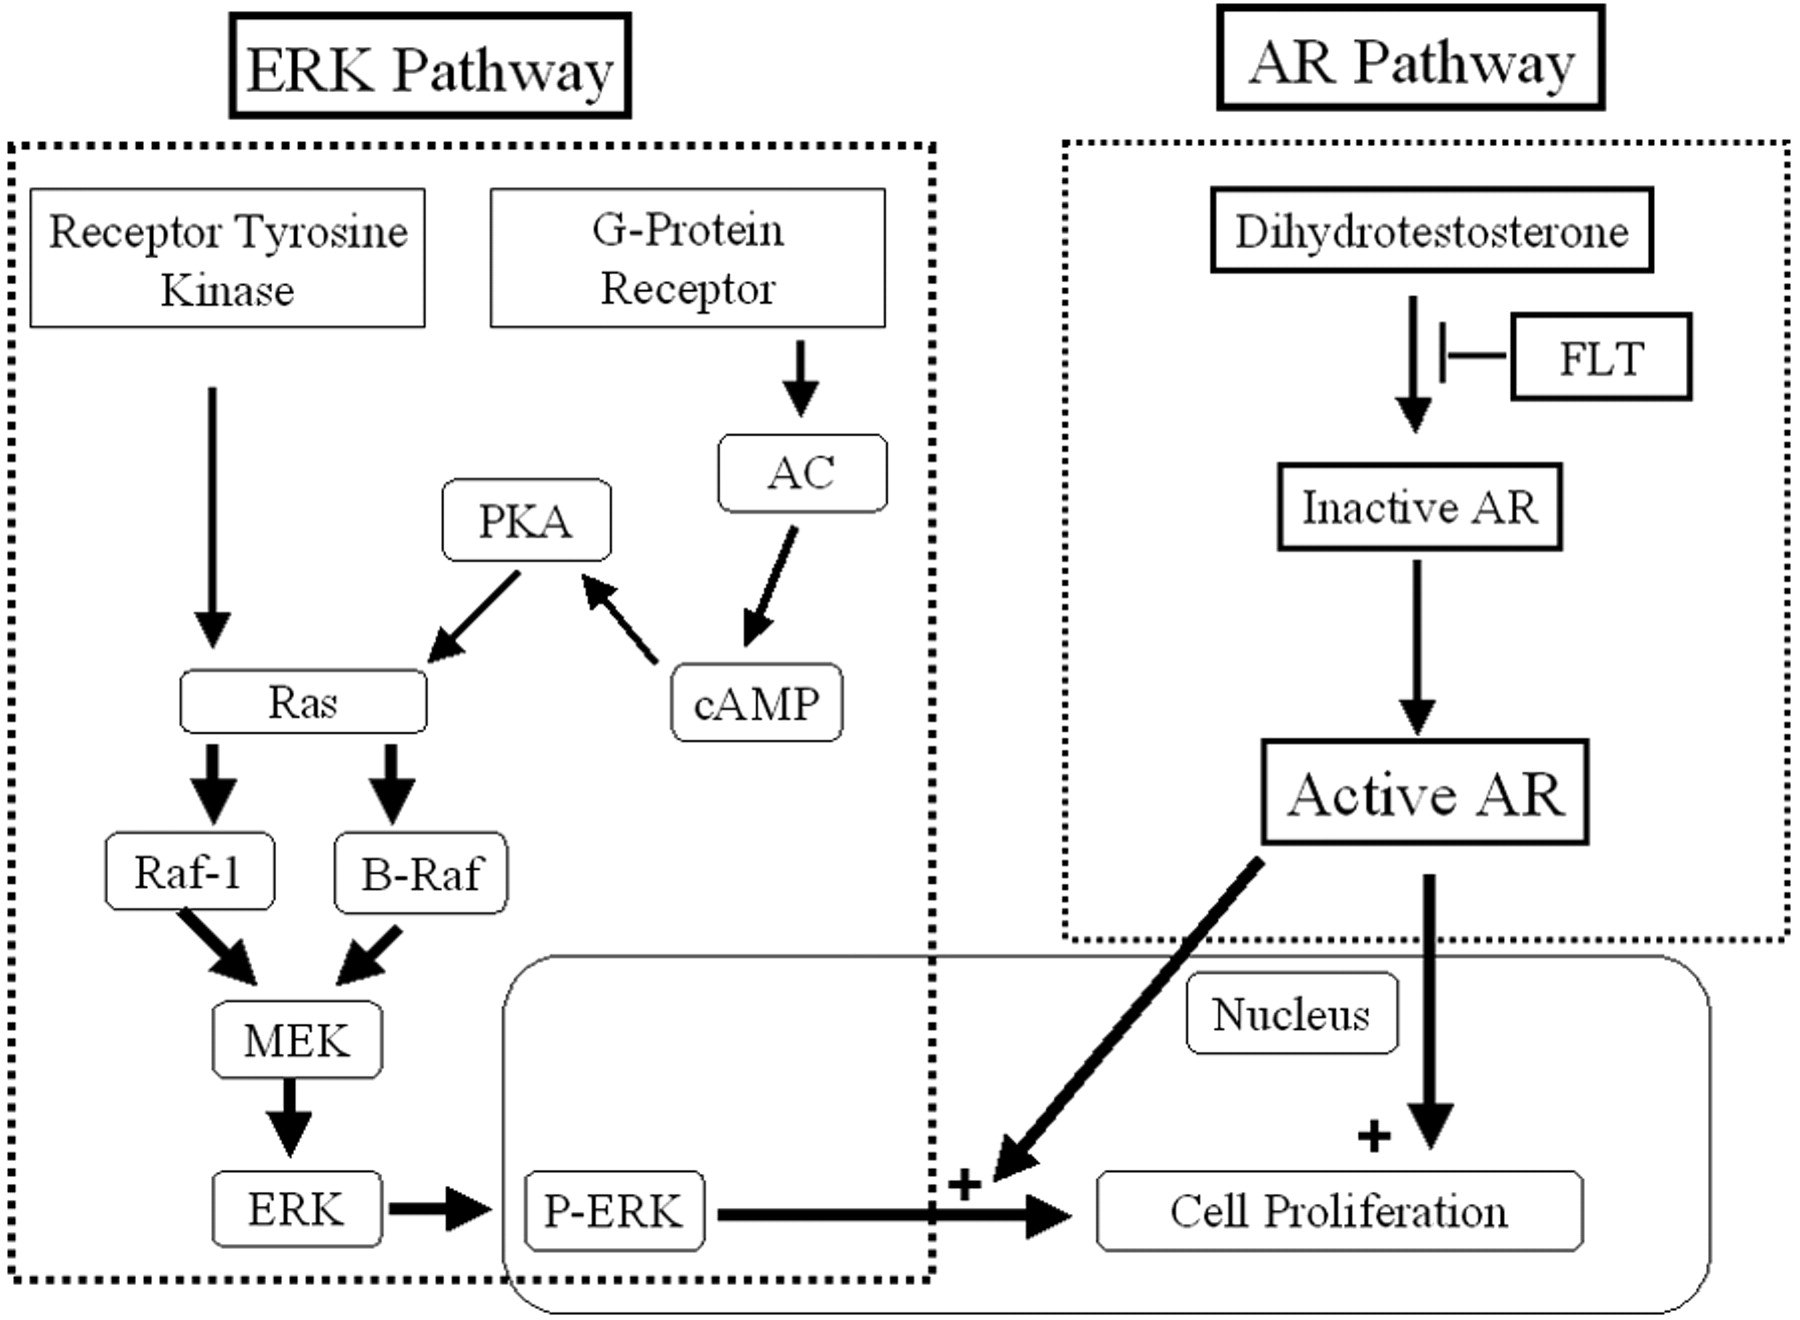 Androgen Receptor Pathway in Rats with Autosomal Dominant Polycystic